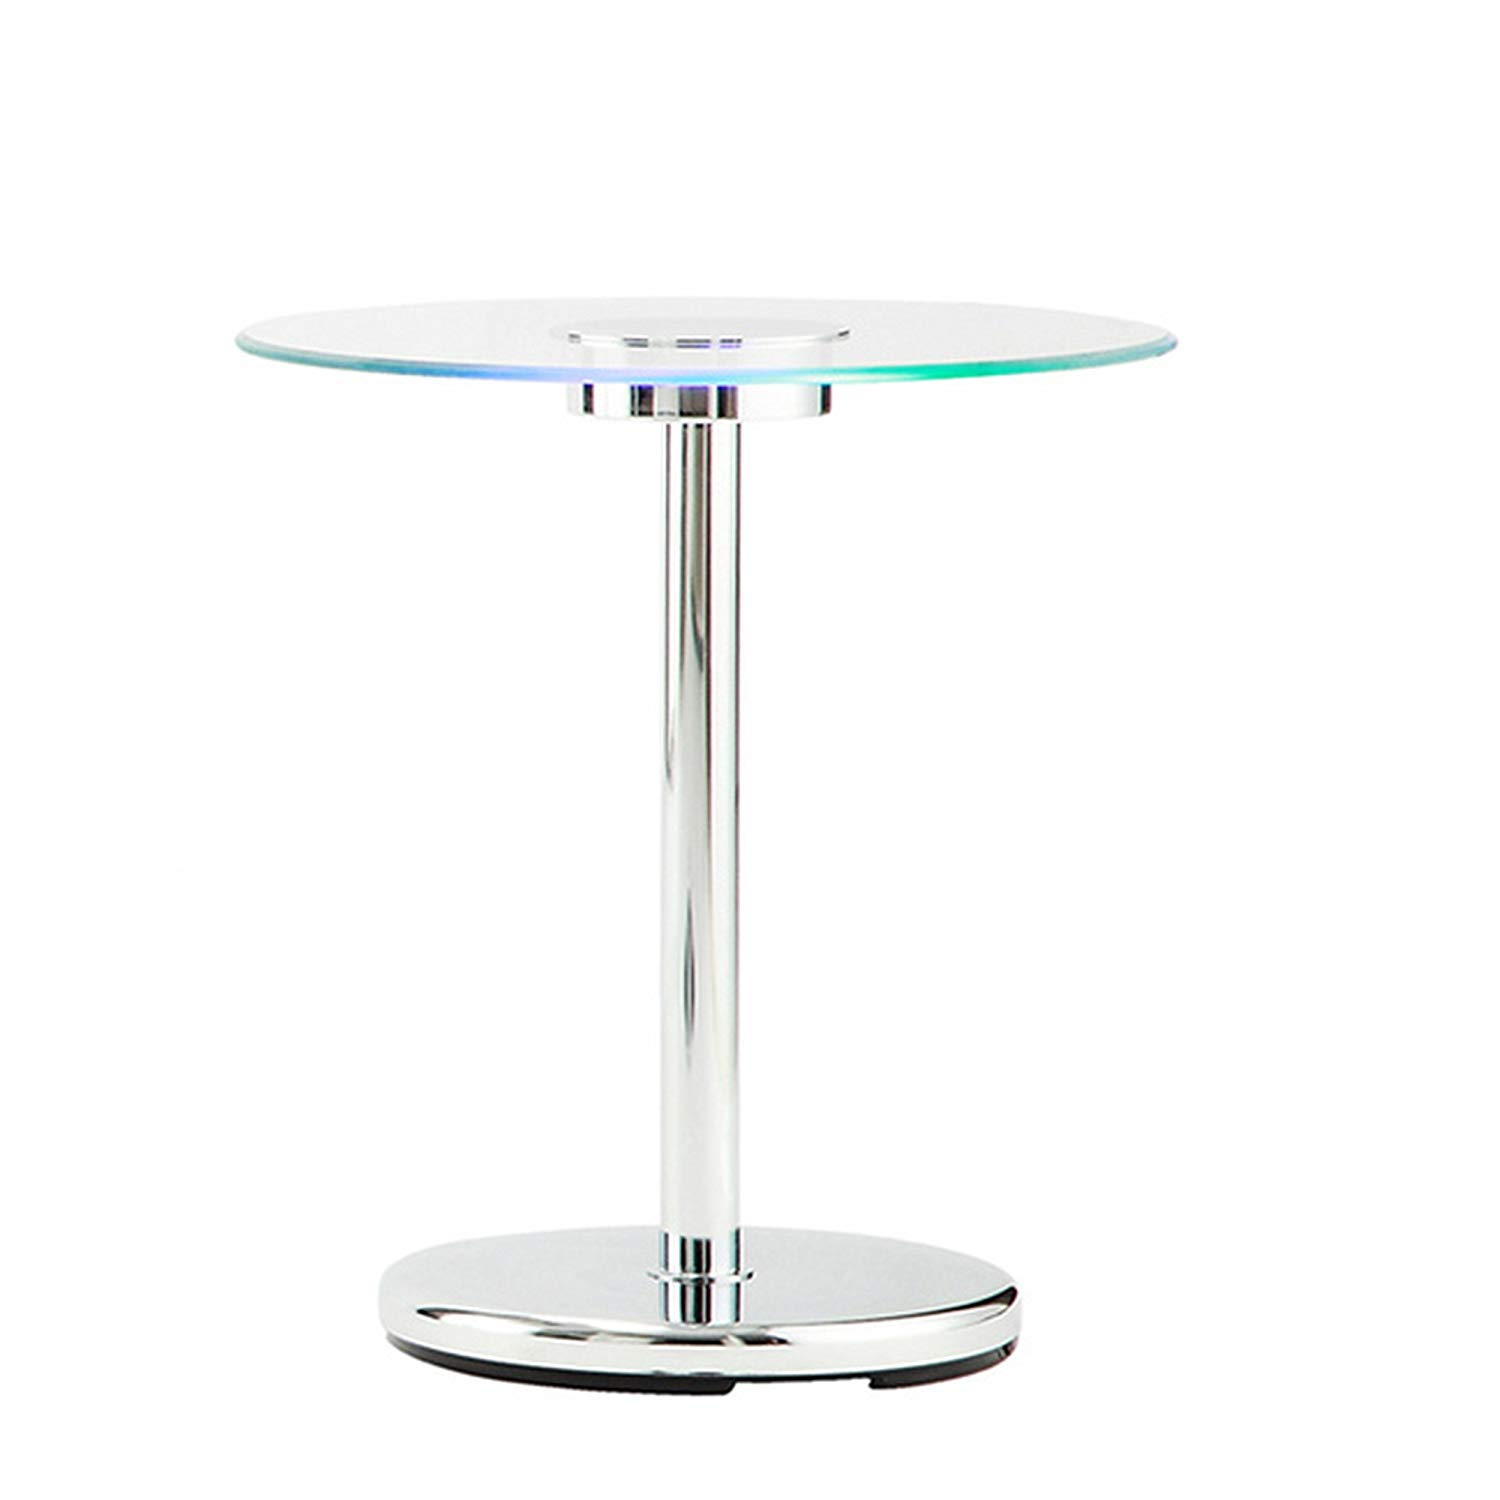 modhaus living modern style led accent tempered glass top table round shaped counter height end chrome metal frame room decor art deco furniture patio umbrella stand small white